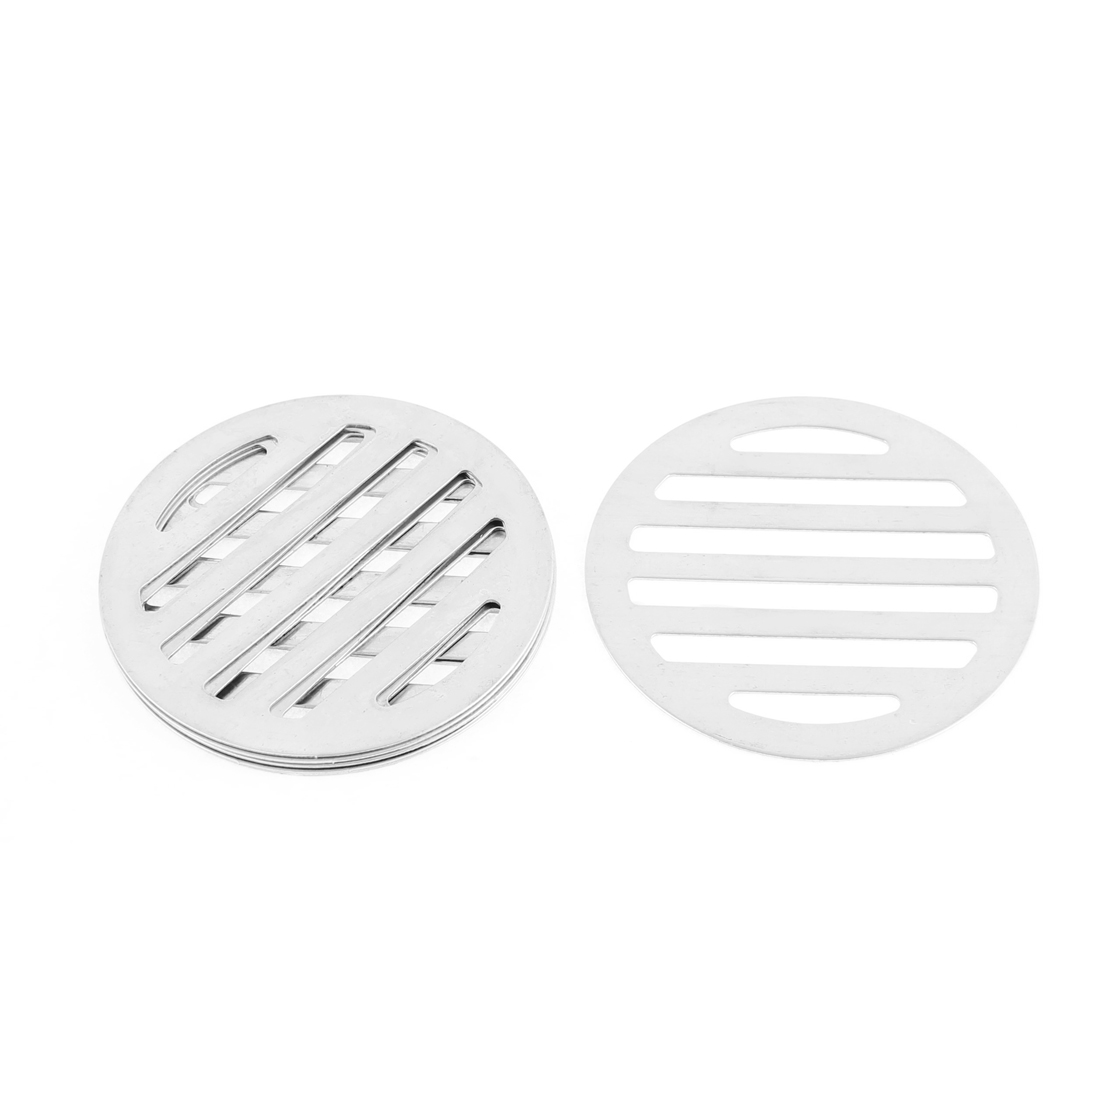 "Kitchen Bathroom Round Floor Drain Drainer Cover 3"" 7.5cm Dia 6Pcs"